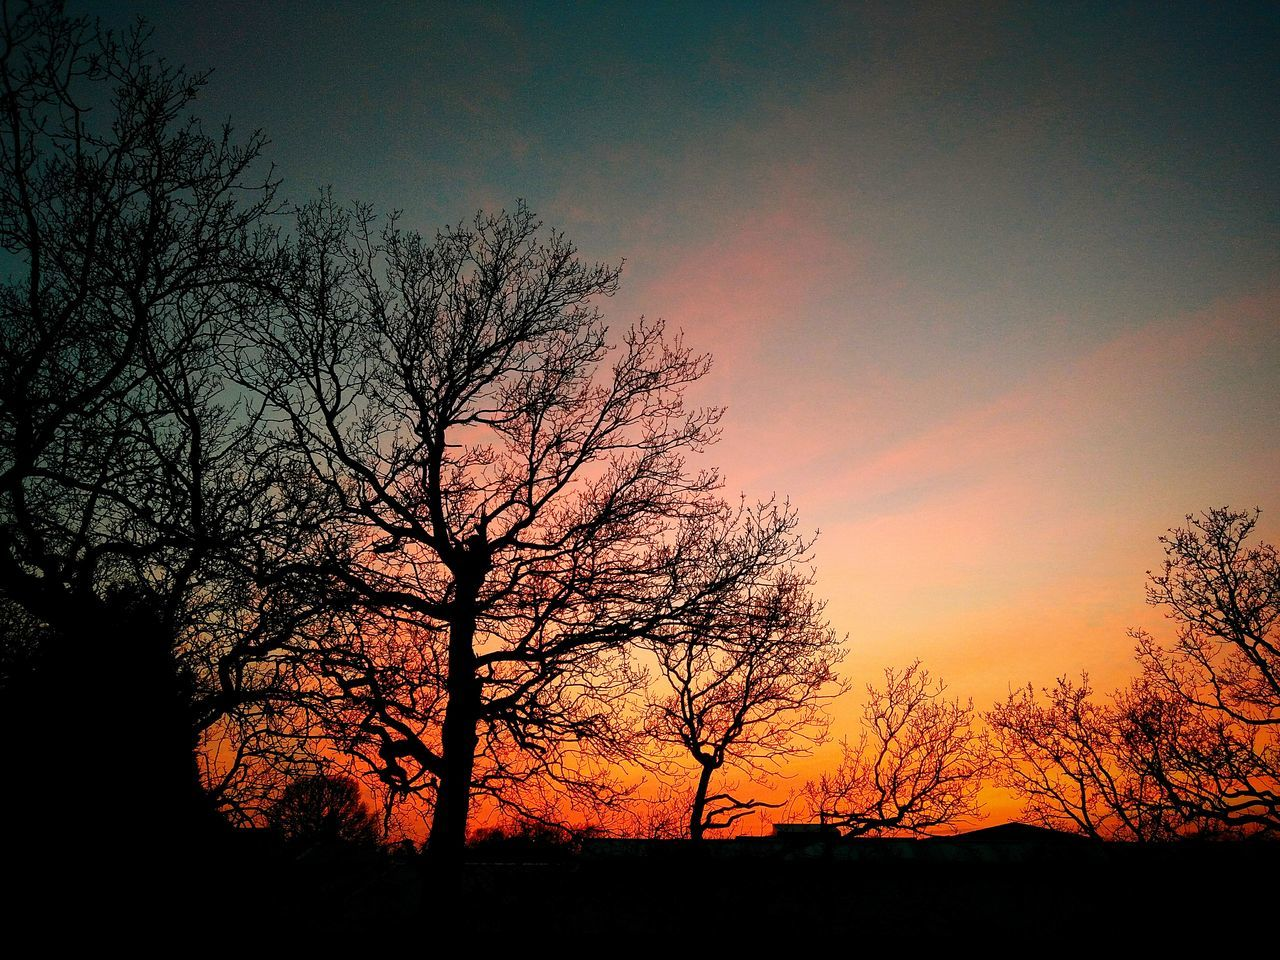 sunset, silhouette, tree, beauty in nature, nature, tranquility, orange color, bare tree, scenics, sky, tranquil scene, landscape, outdoors, no people, branch, lone